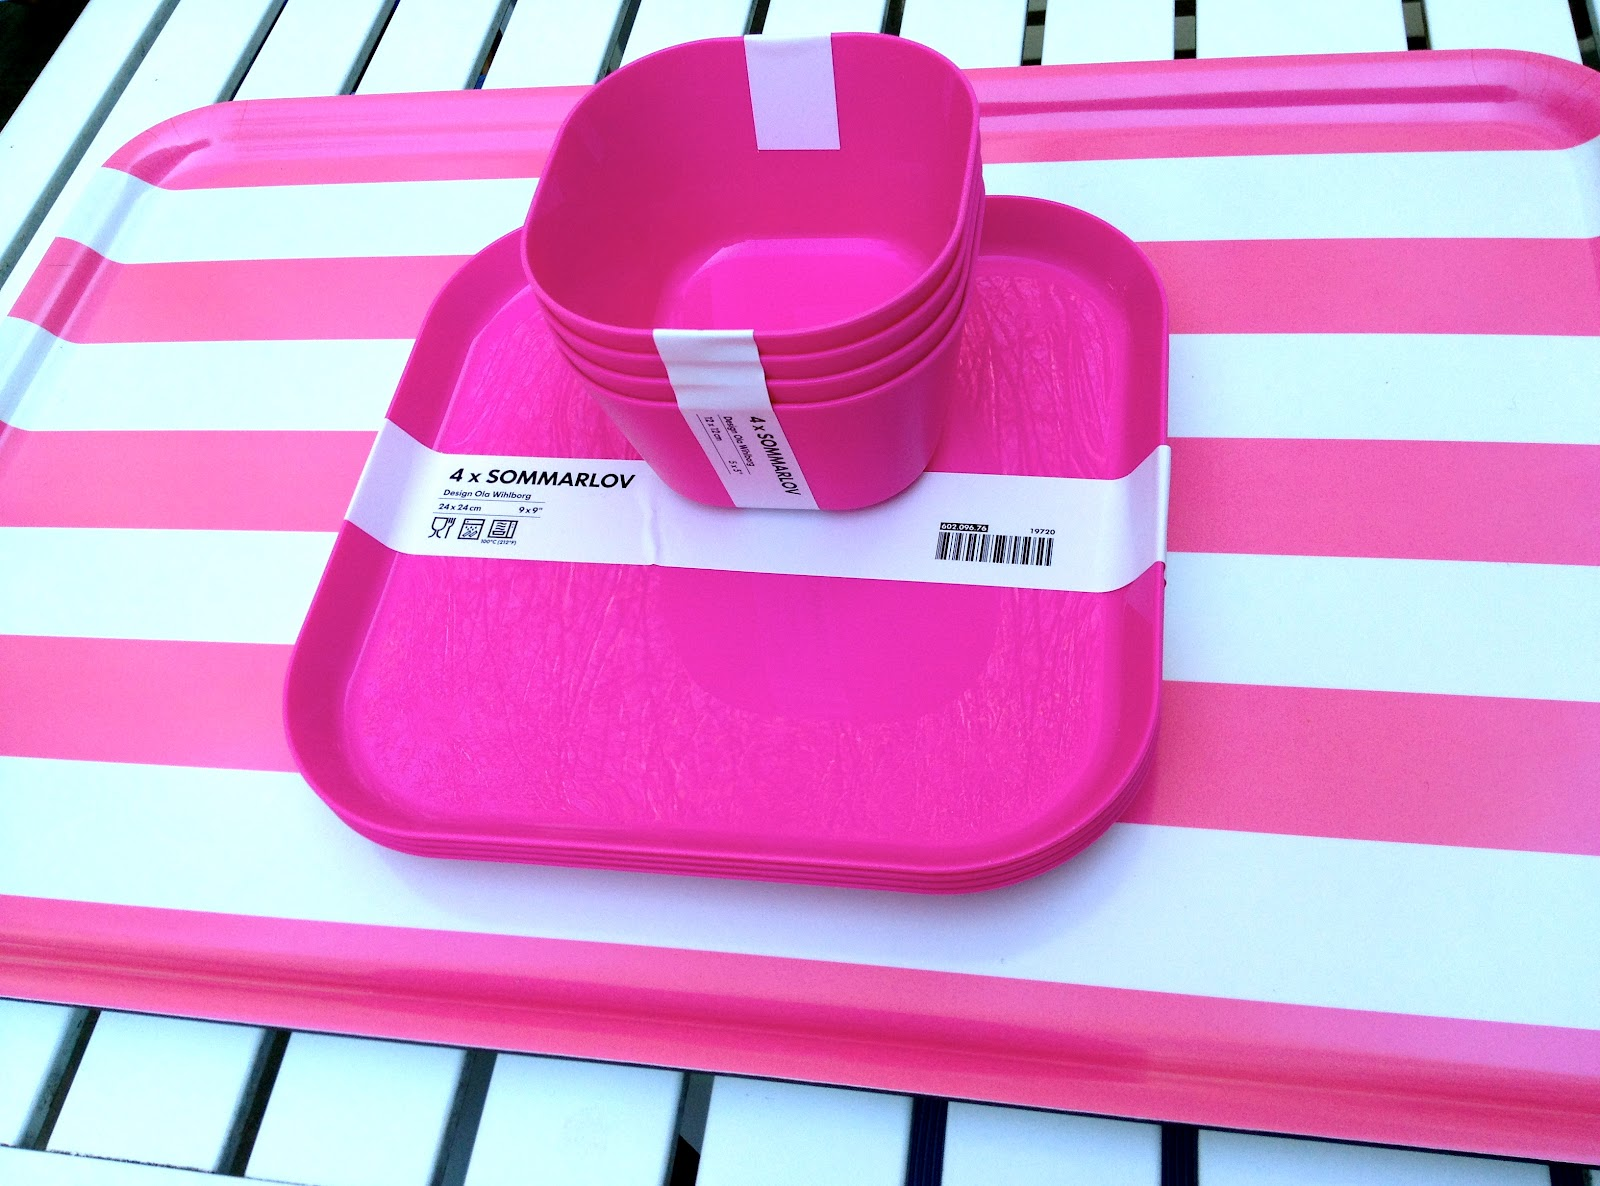 The cutest bright pink plates and bowls and how about that striped melamine tray for $7.99 I couldnu0027t pass it up  sc 1 st  sammer party & sammer party: